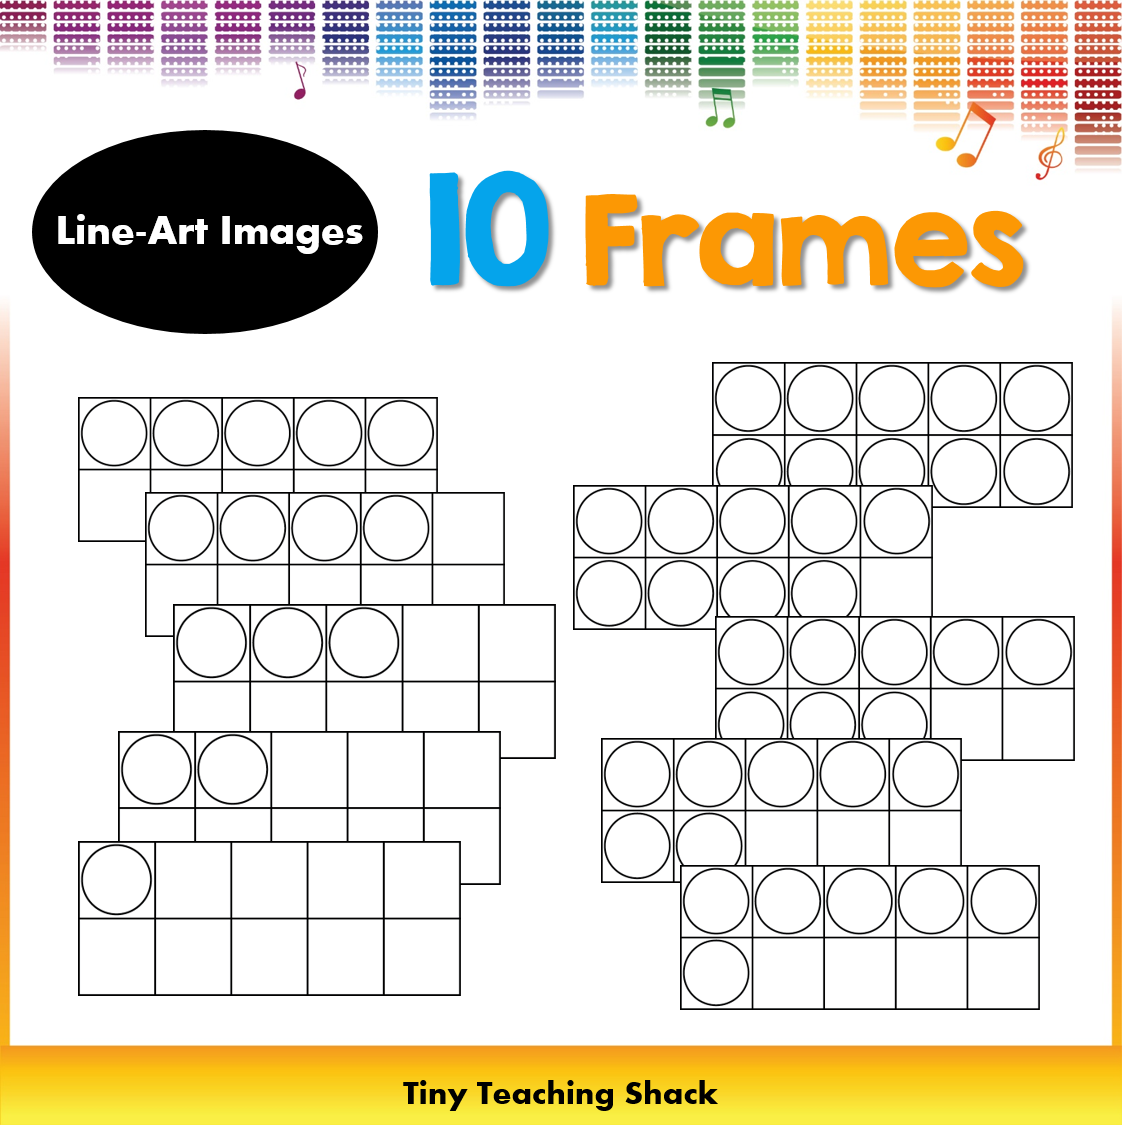 Funky What Is A 10 Frame In Math Sketch - Framed Art Ideas ...